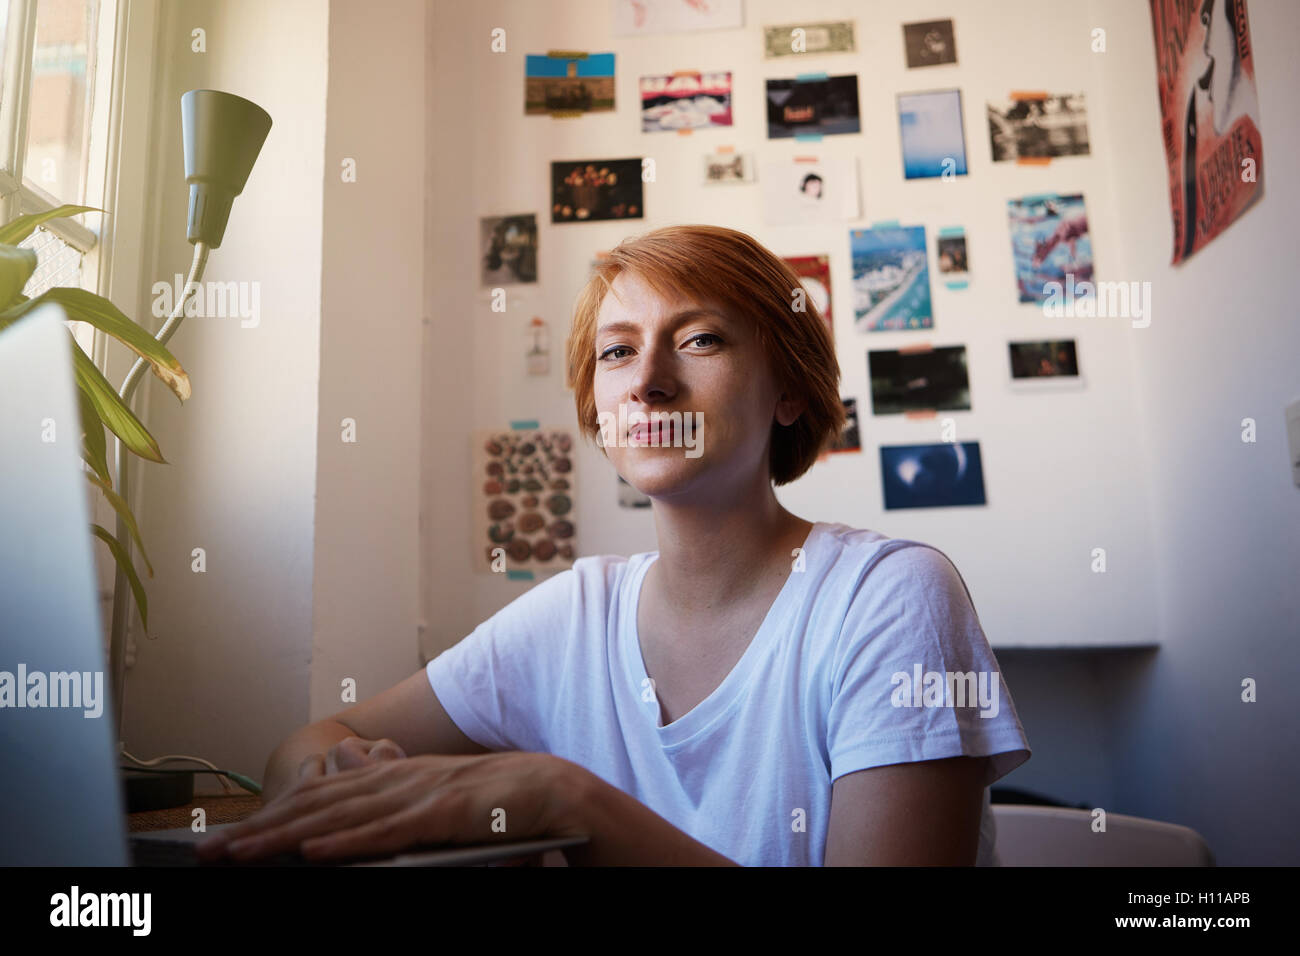 One Modern Female Coworker Smiling During Working Process.Young Hipster  Startup Project.Woman short hair and white - Stock Image